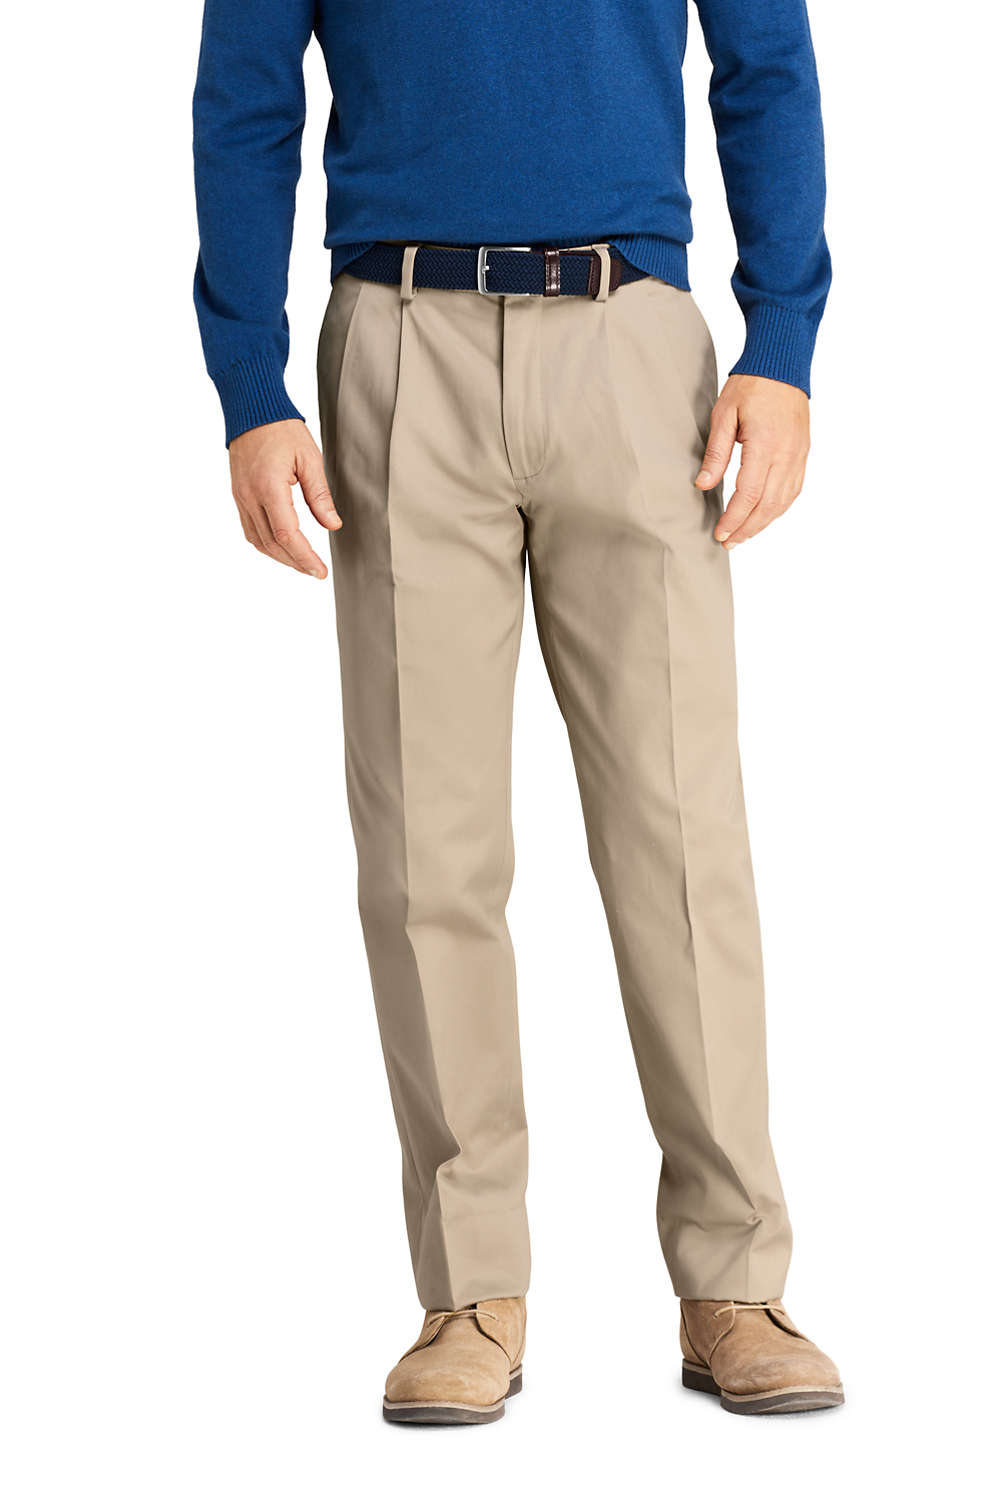 Men S Tailored Fit Pleat No Iron Twill Dress Trousers From Lands End